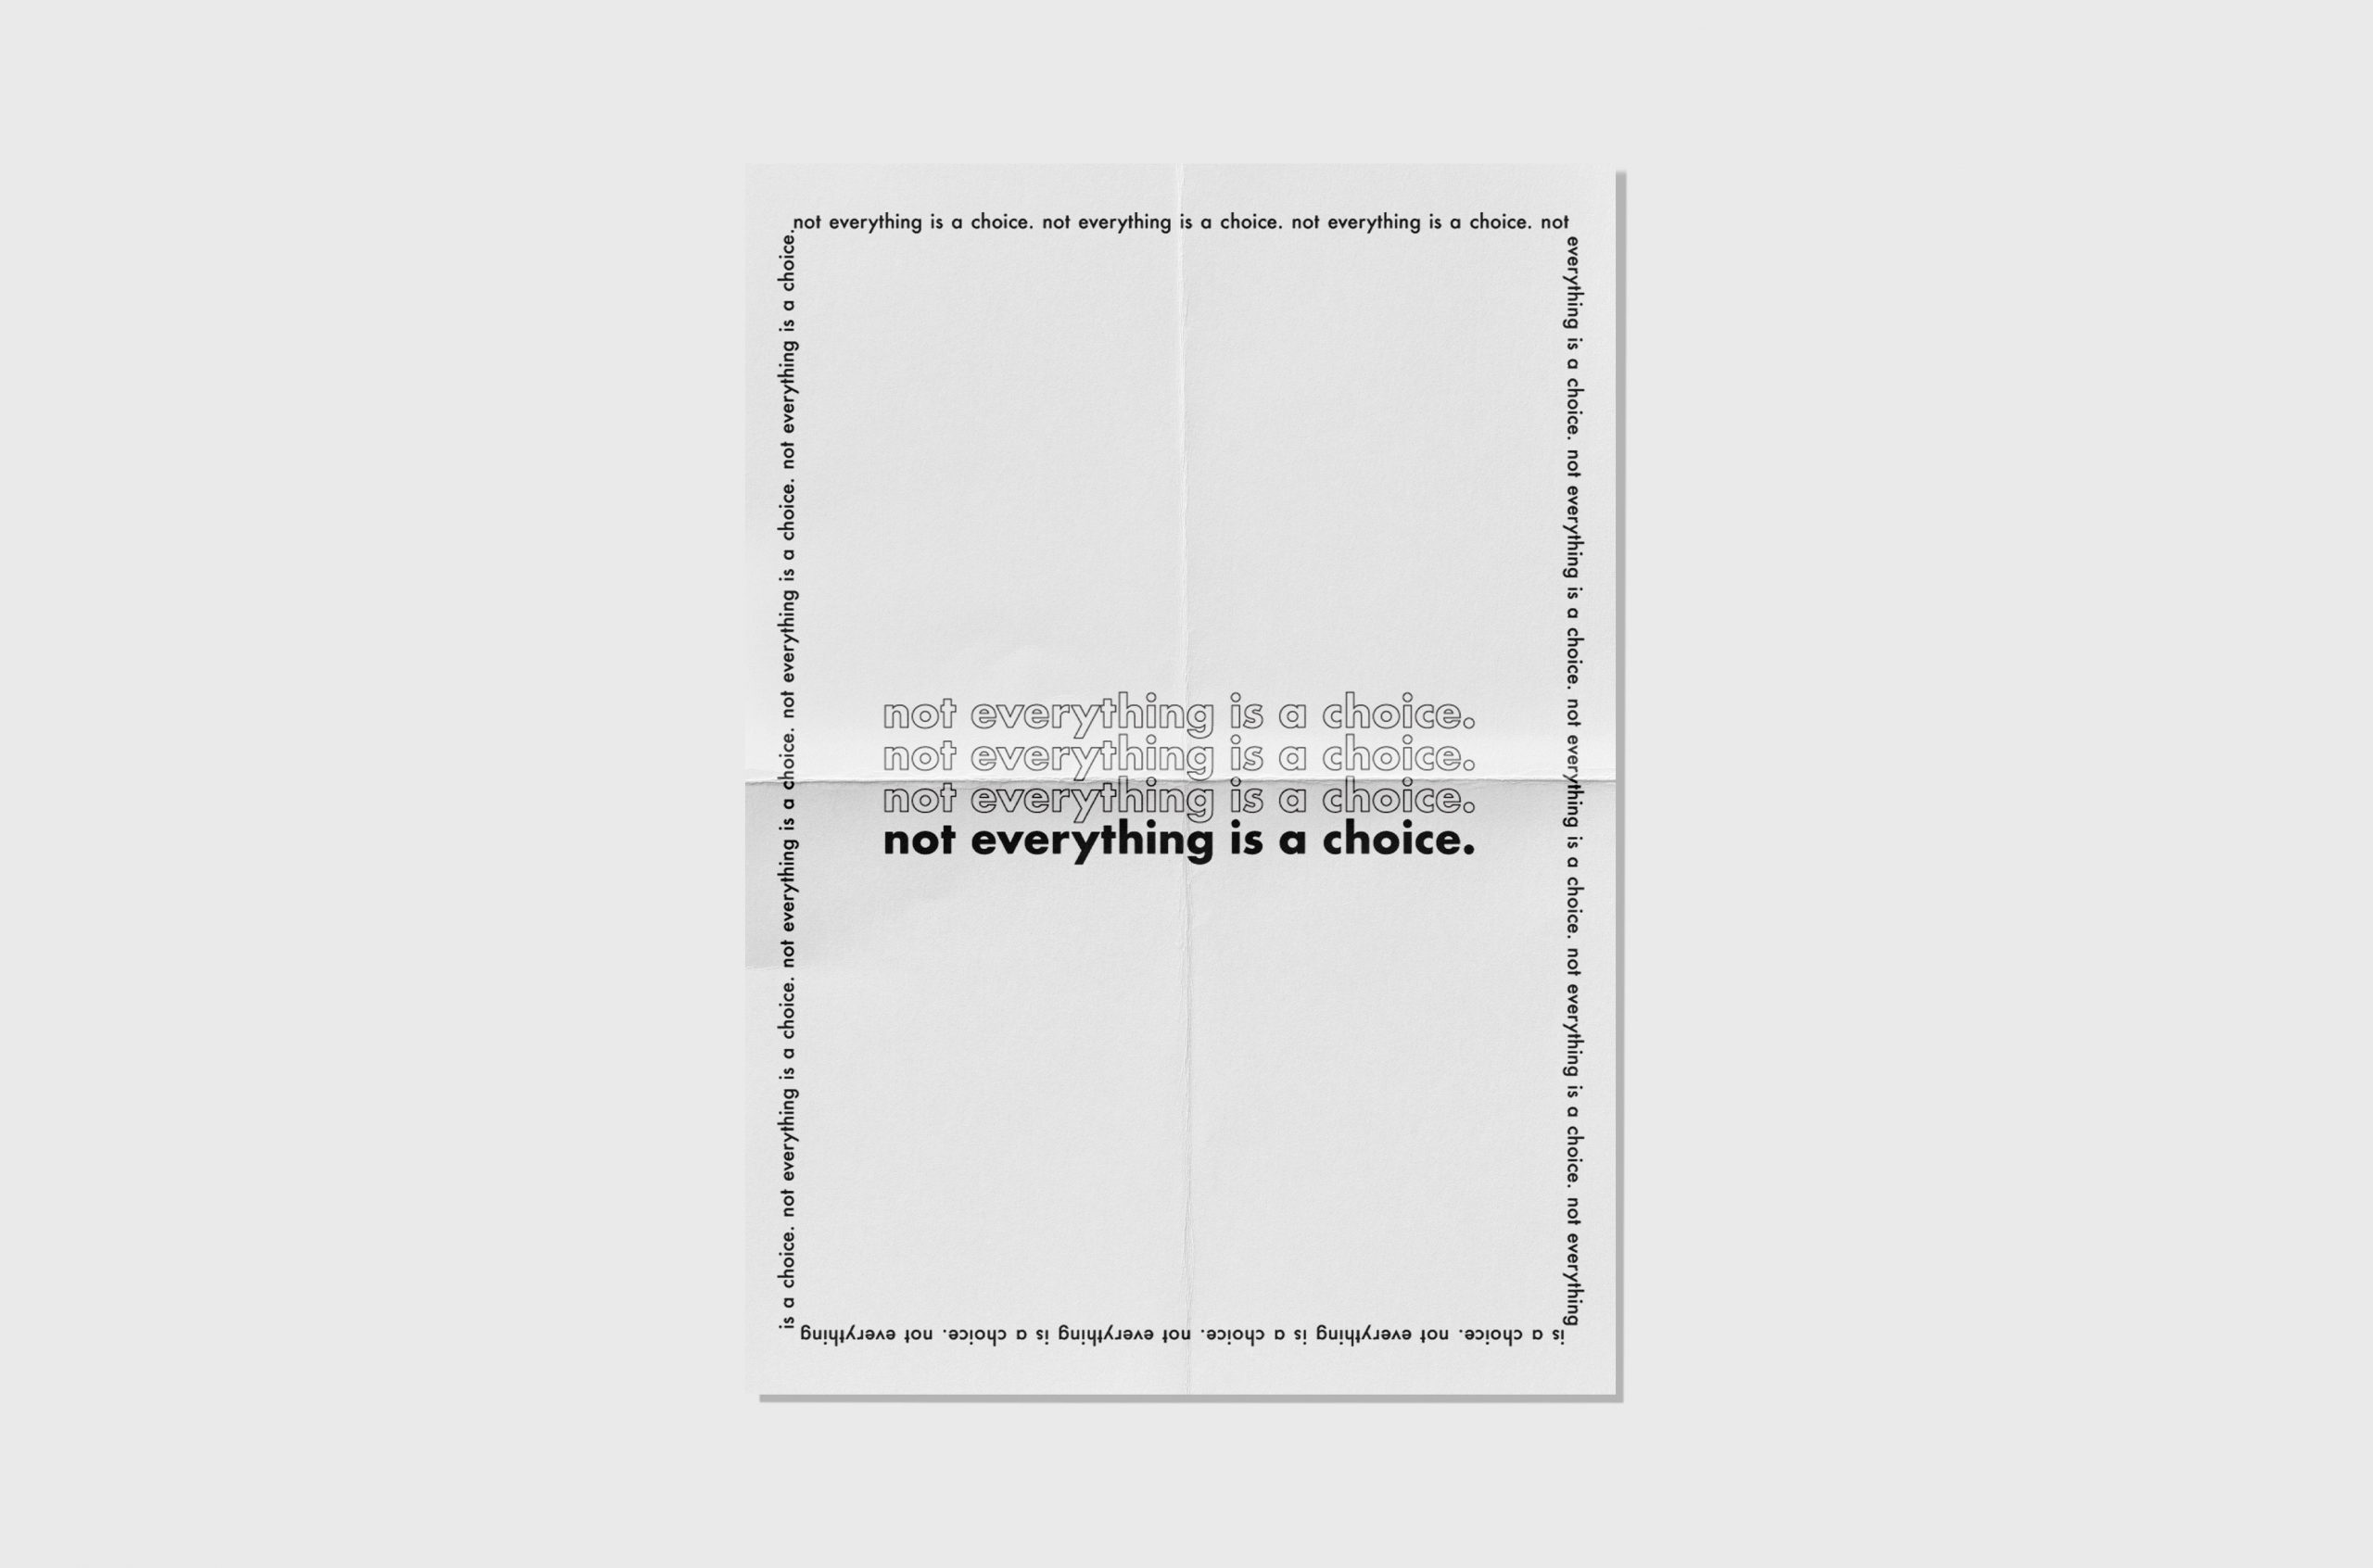 noteverything-is-a-choice2